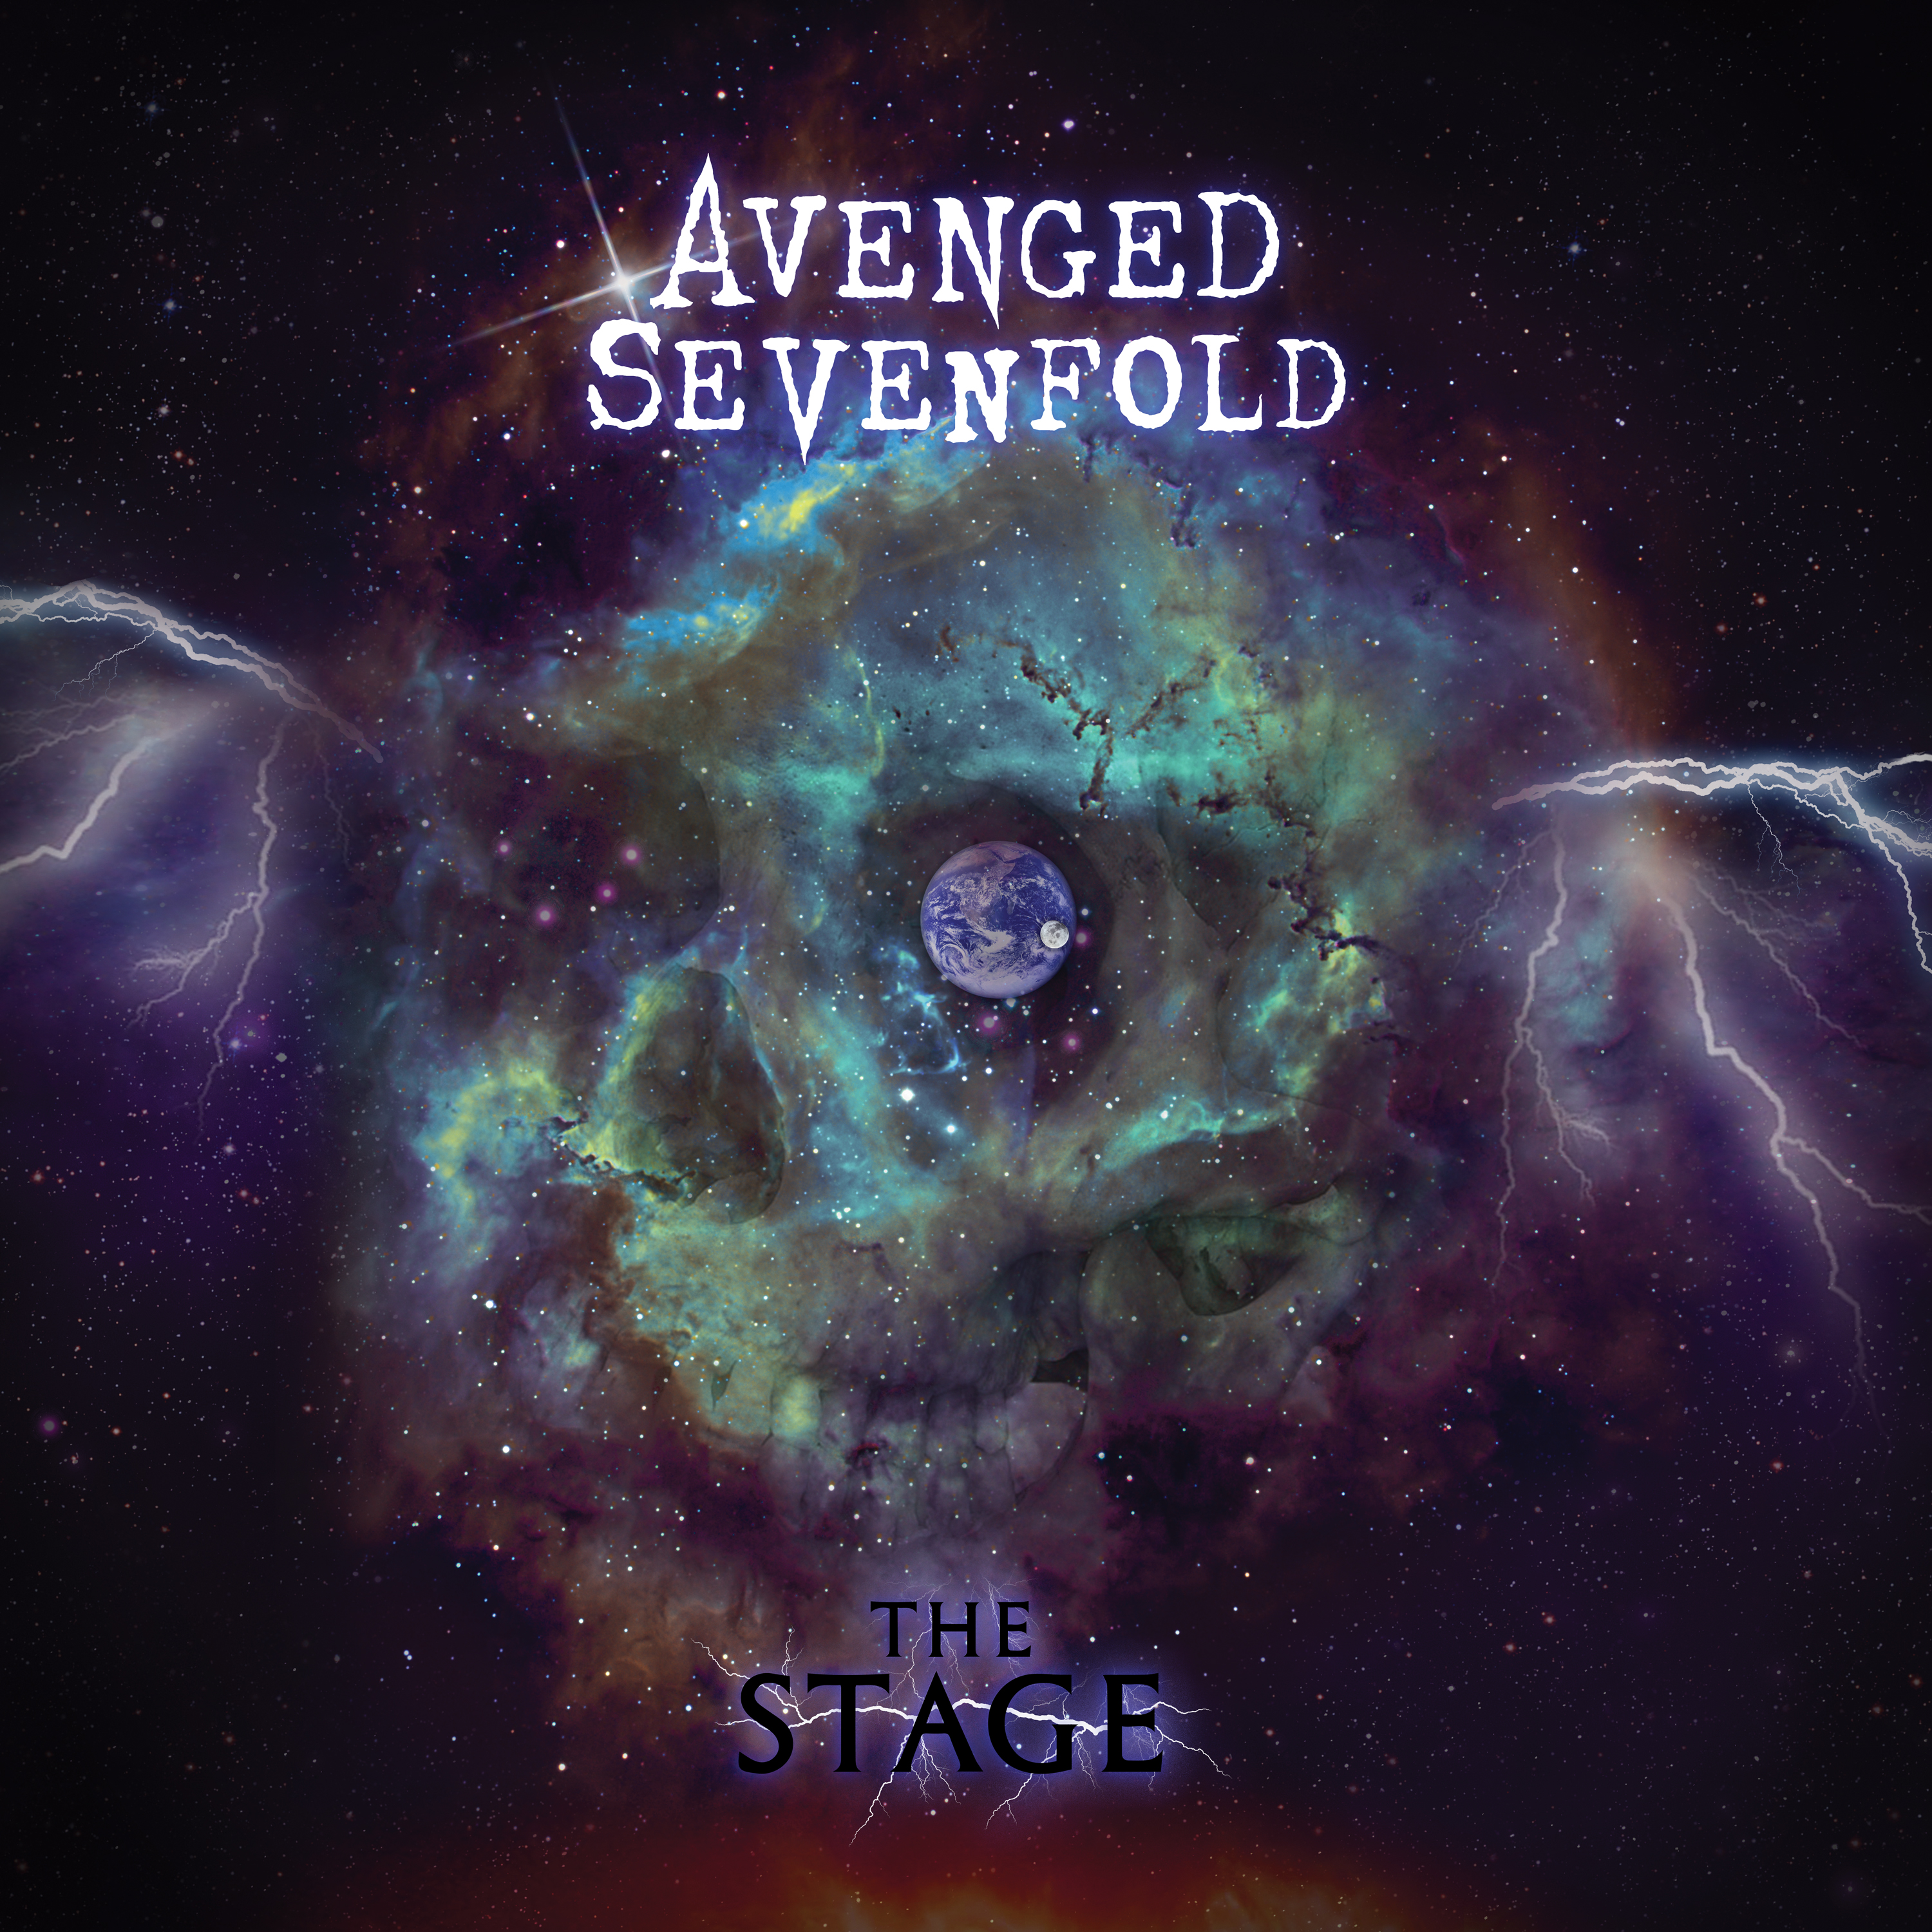 avenged-sevenfold-thestage-stage-vinyl-gerosa-records